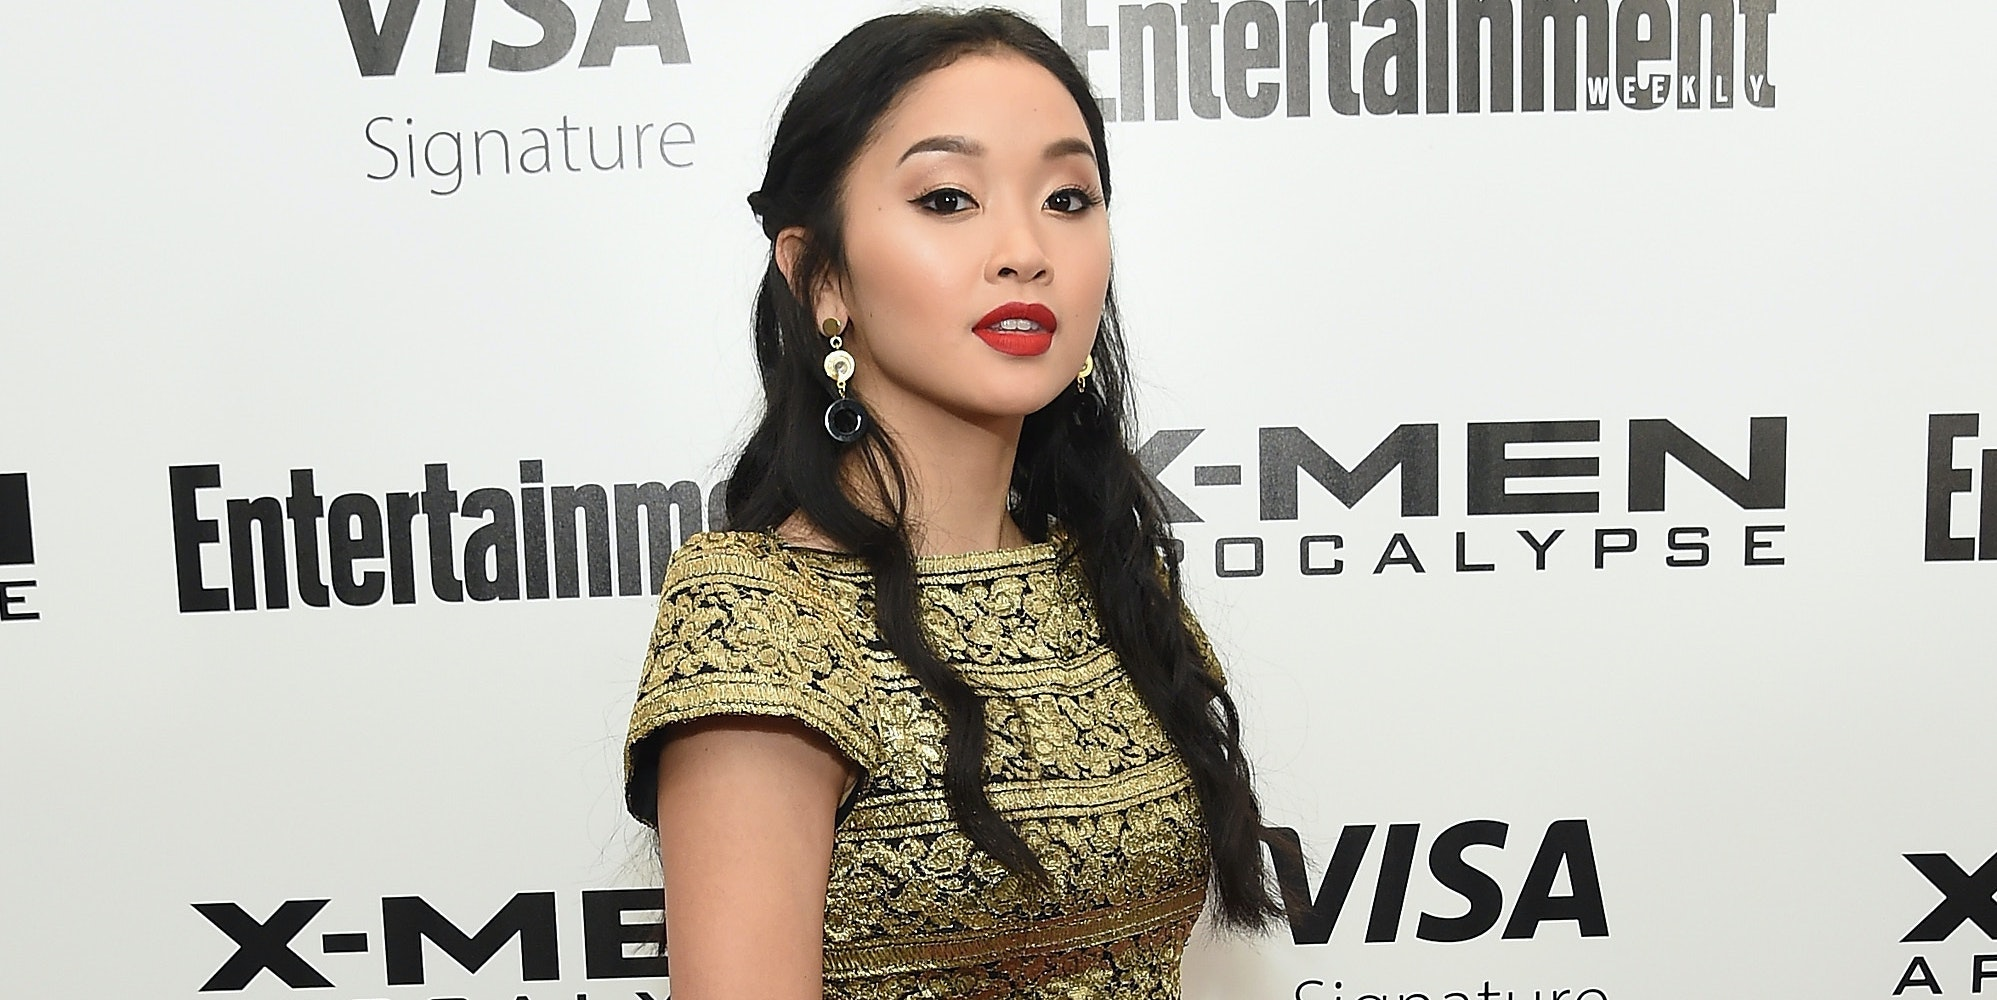 NEW YORK, NY - MAY 24:  Actress Lana Condor attends the 'X-Men Apocalypse' New York screening at Entertainment Weekly on May 24, 2016 in New York City.  (Photo by Jamie McCarthy/Getty Images)